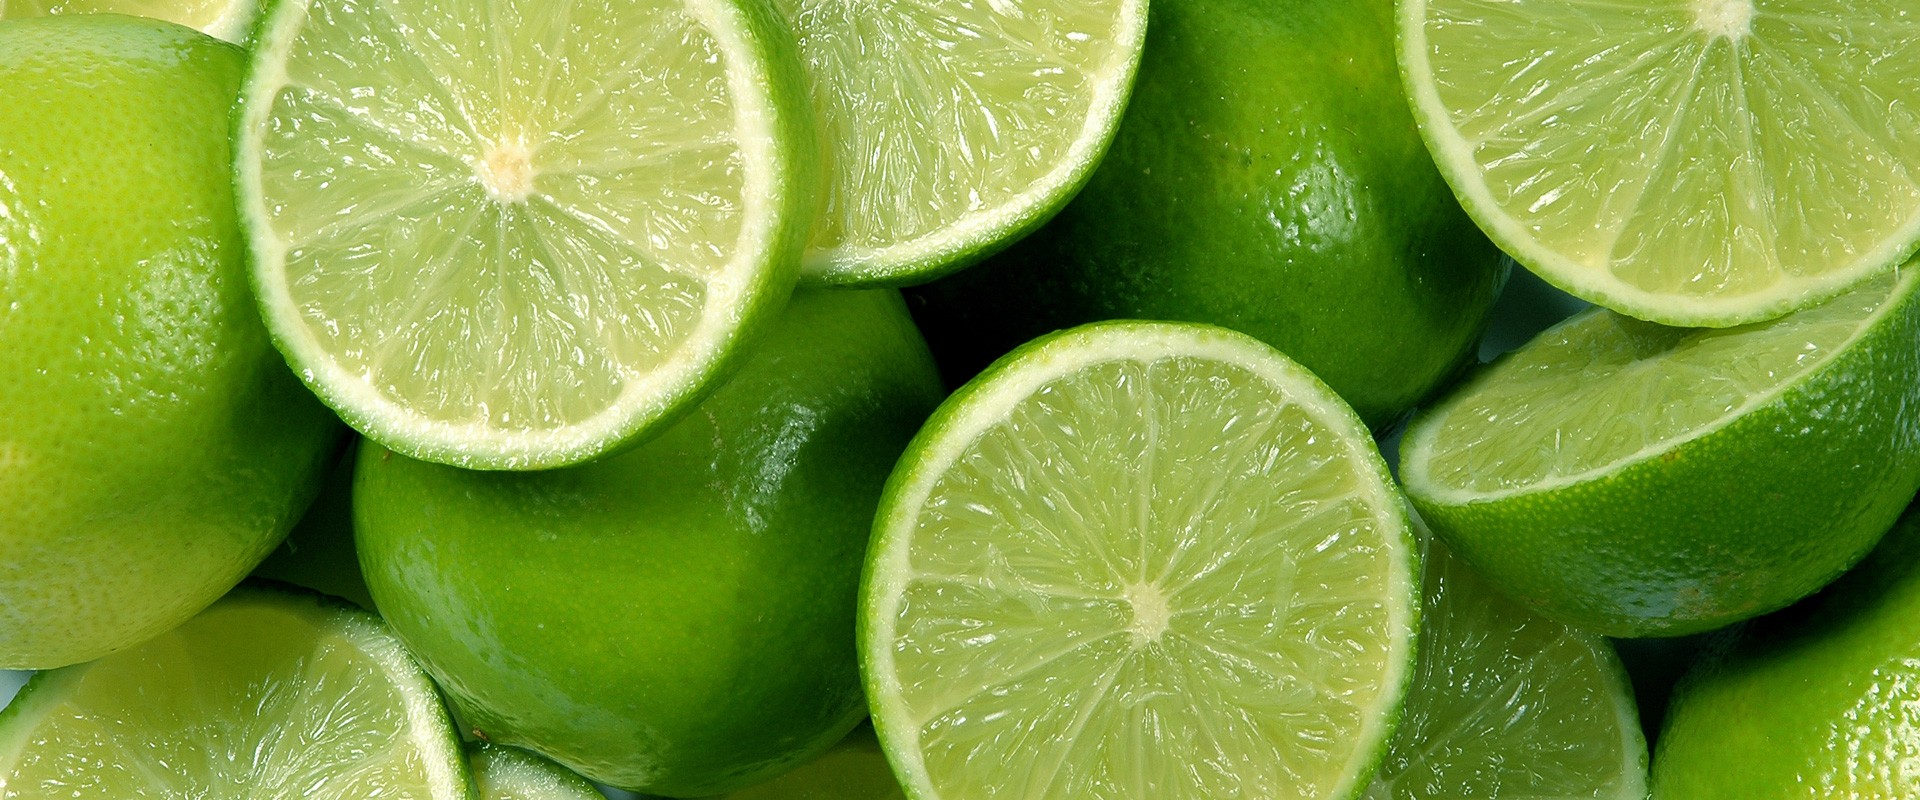 Limes-Product